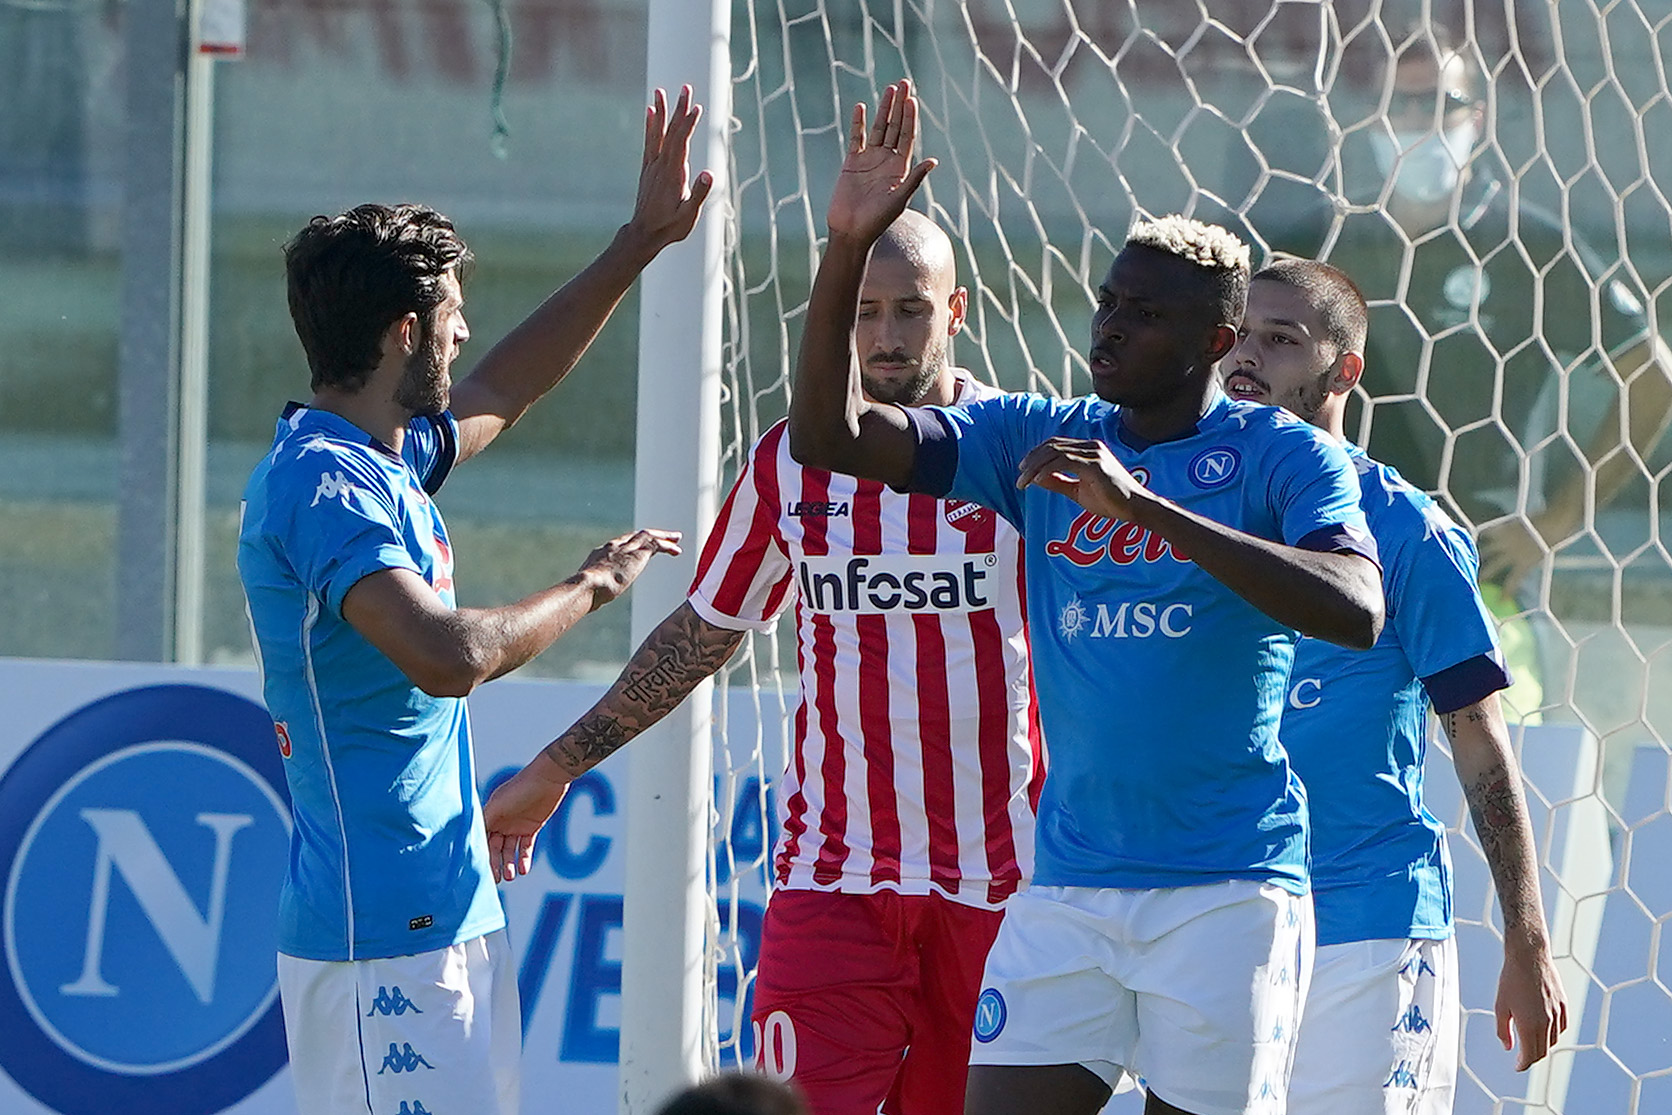 UEFA Hails Osimhen After Second Hat-trick For Napoli